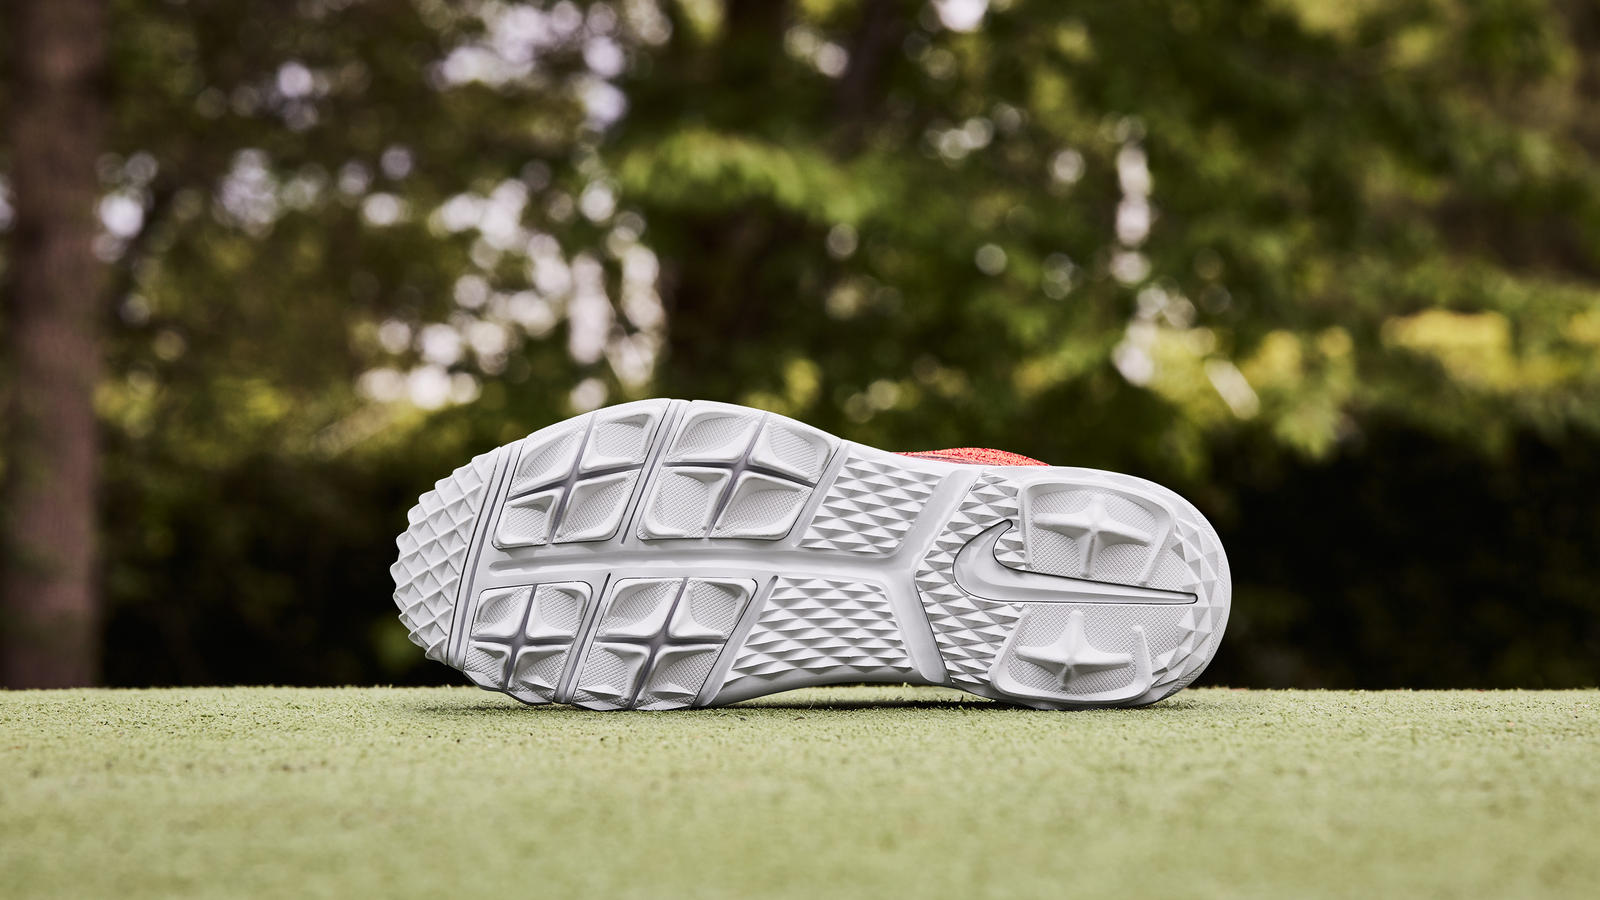 Nike news sneaker feed red flyknit golf 0392 s v1 hd 1600